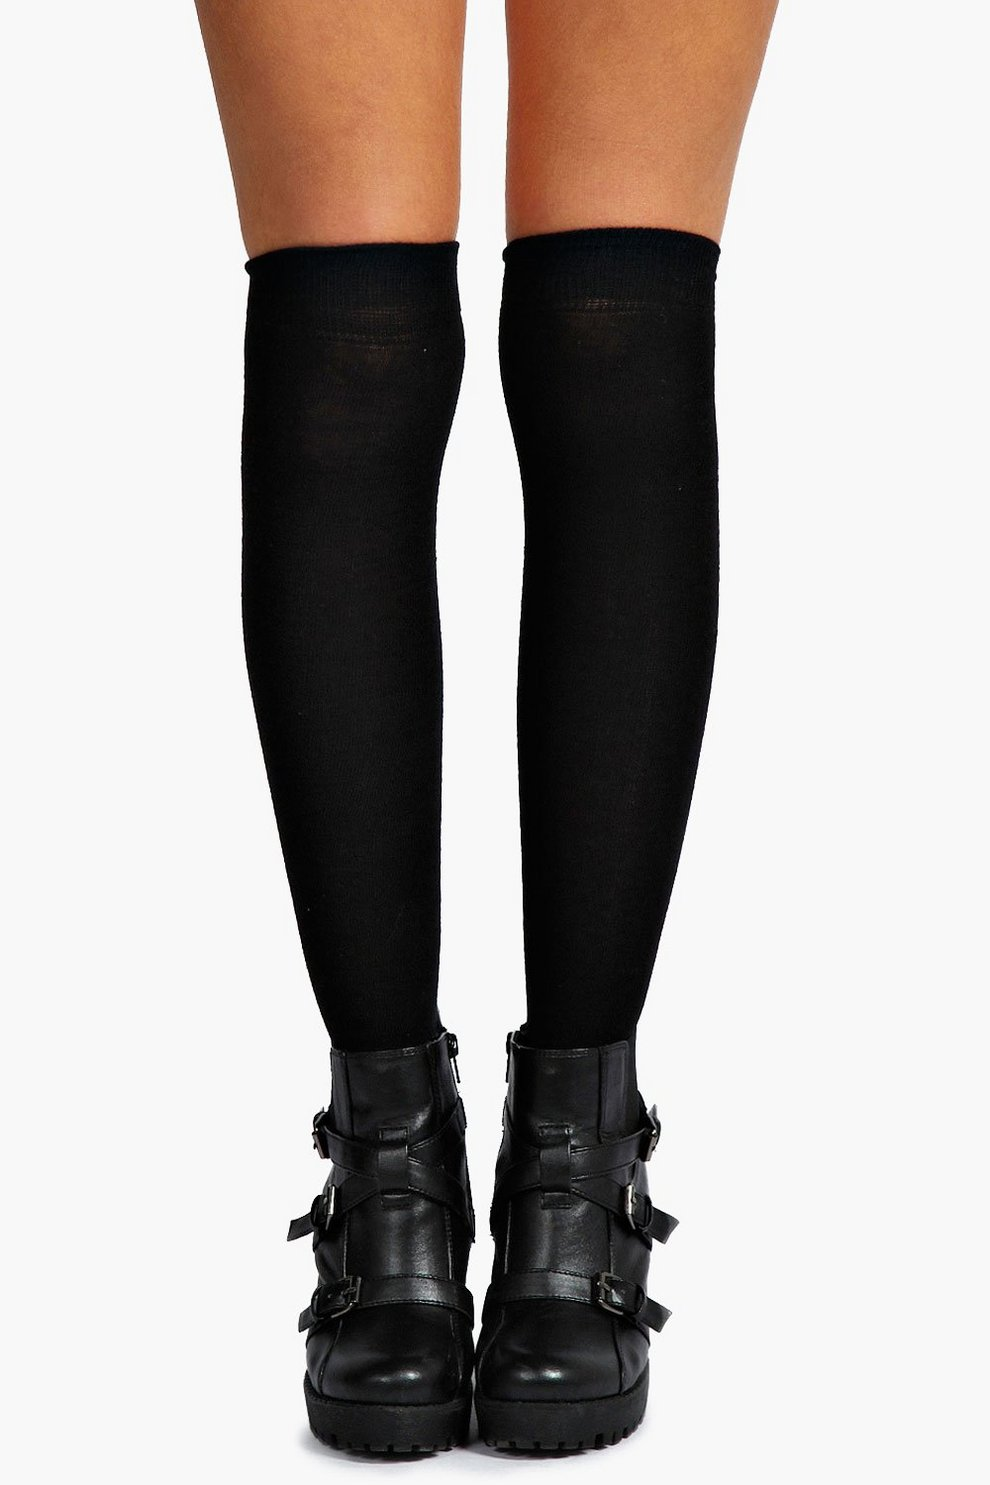 0ffdba4d2 Womens Black Knee High Socks